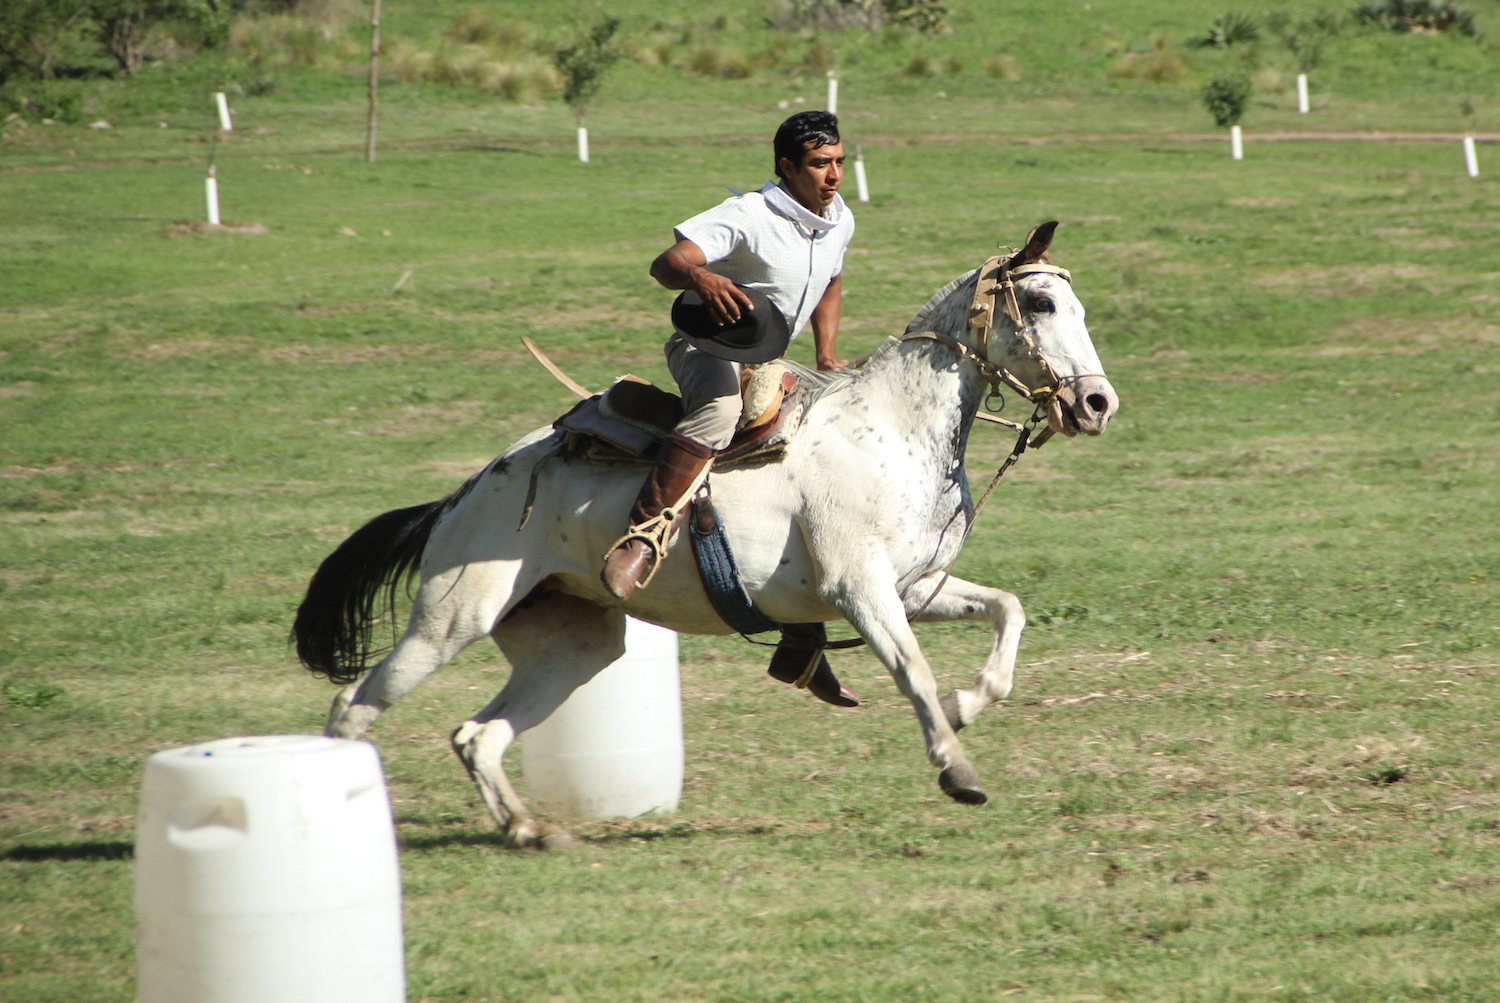 Playing Polo at Estancia Los Potreros